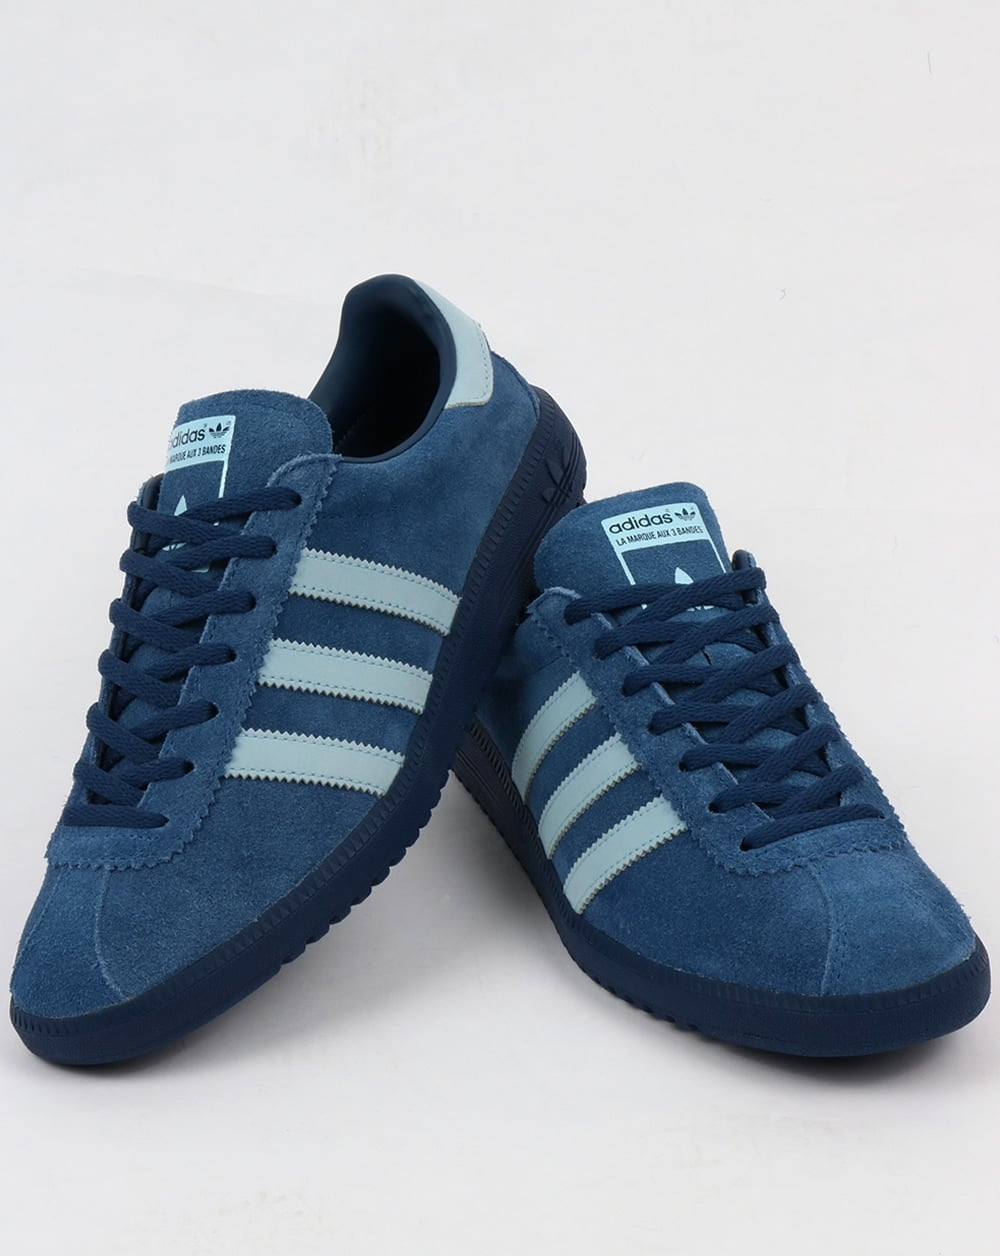 Adidas Bermuda Trainers Navy Blue Mystery Clear Originals